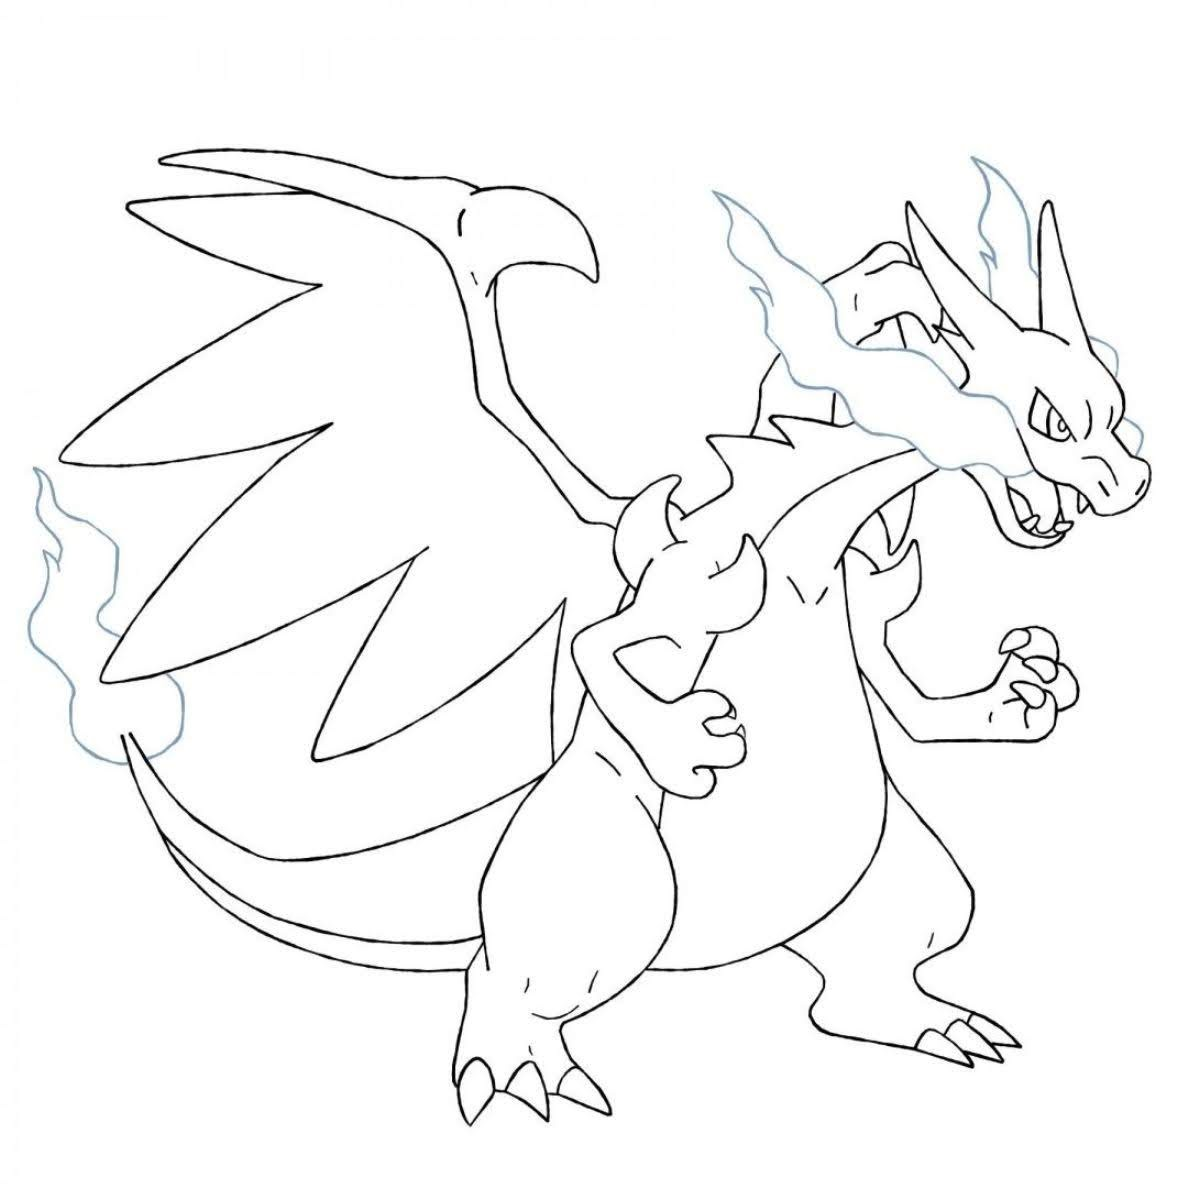 Printable Charizard Coloring Pages for Free - Free Pokemon ...